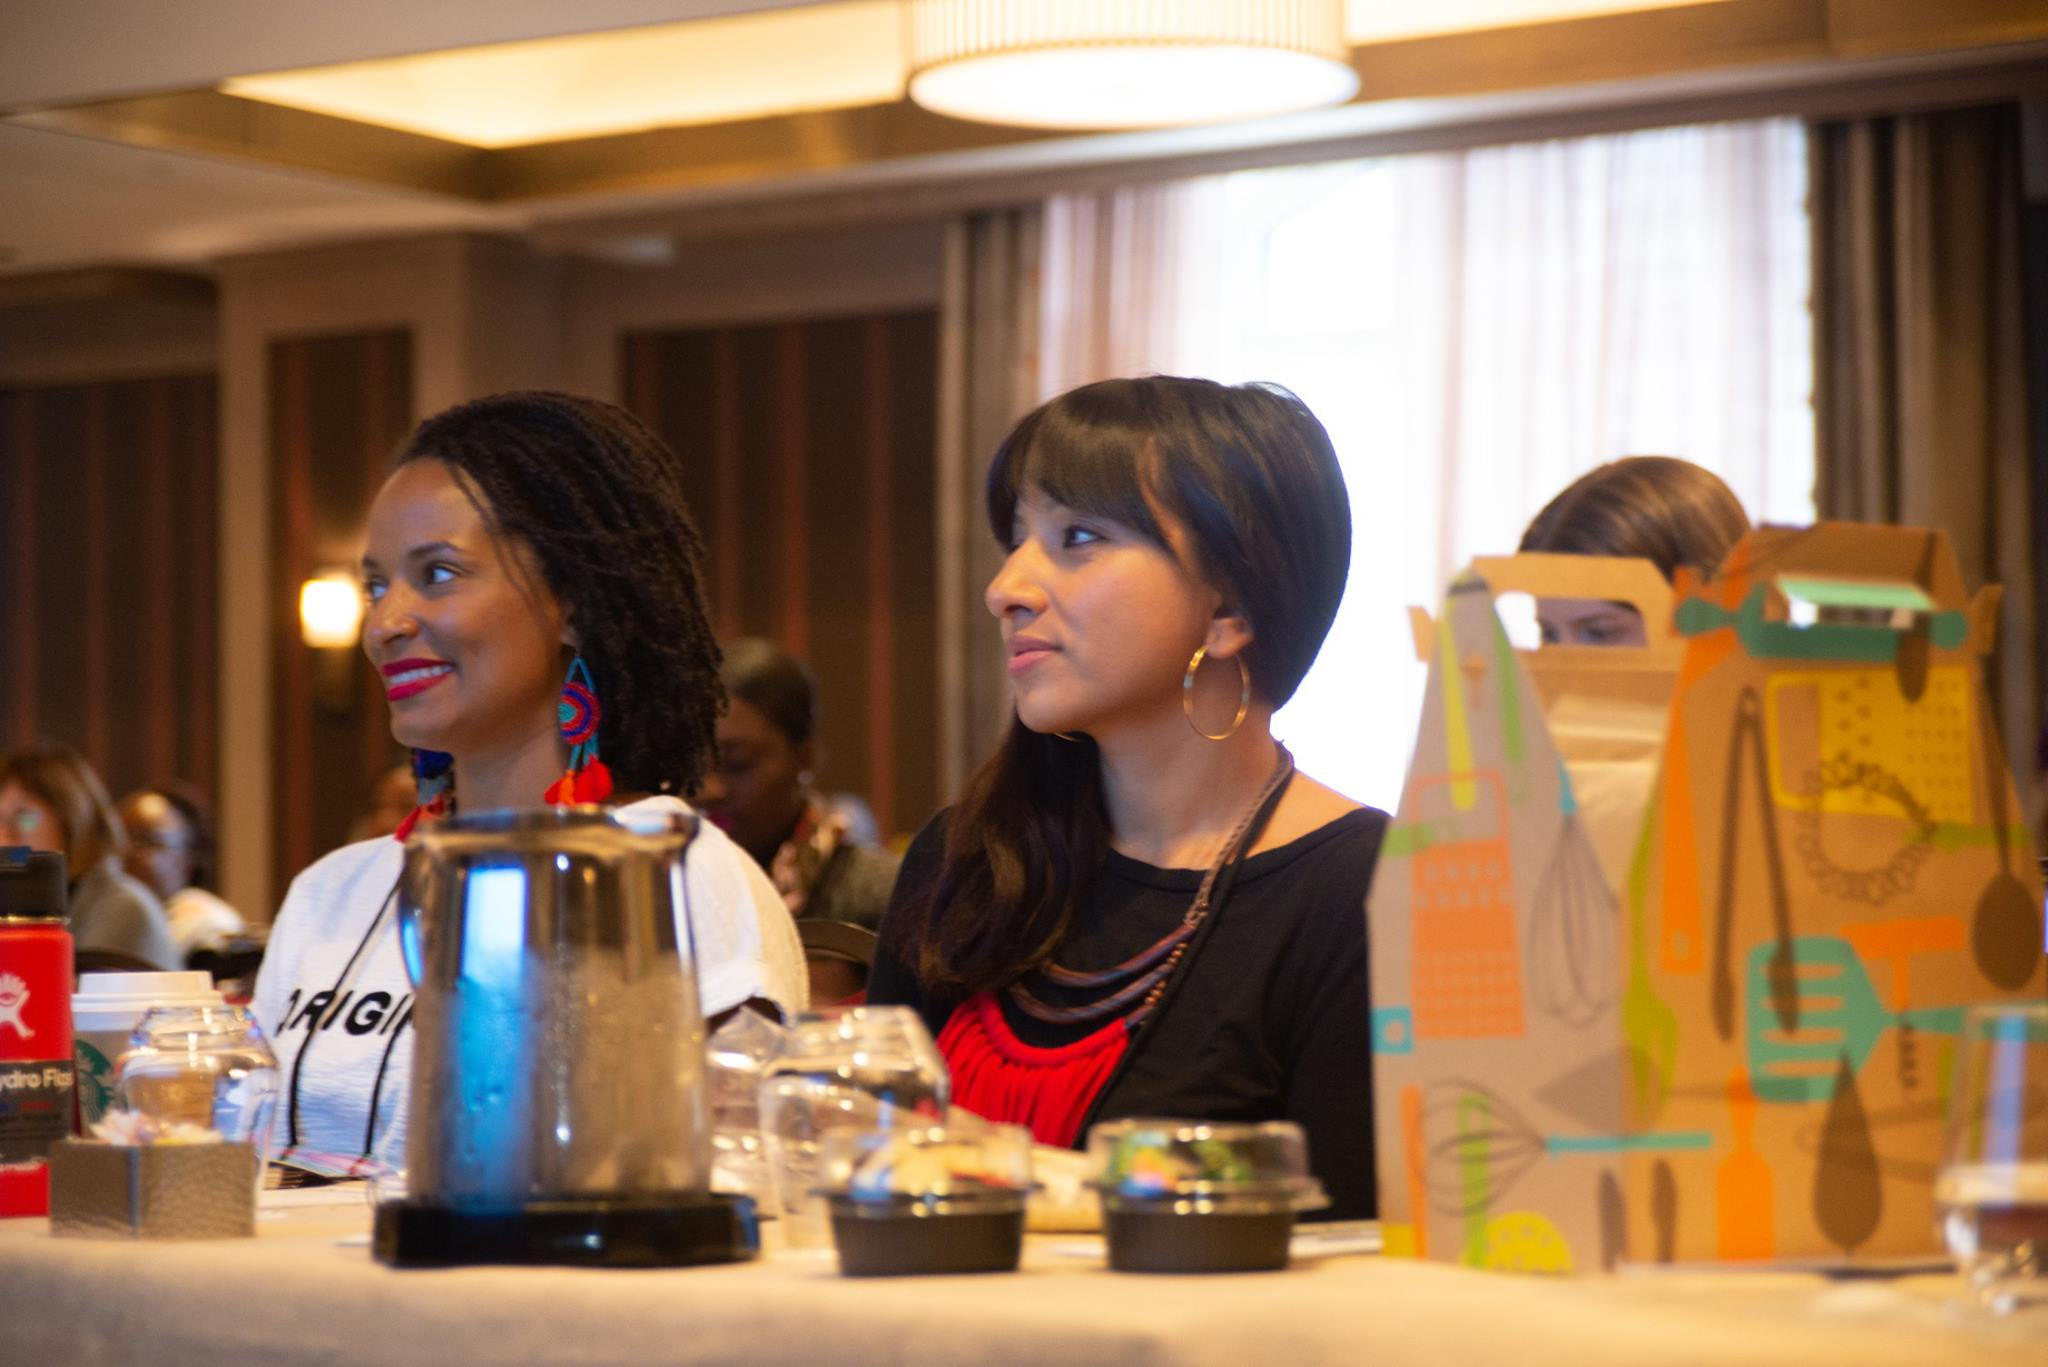 At #WITS18 I met phenomenal women and got reacquainted with bloggers that I first met when I published in 2013. The excitement of being at #WITS18 was equally shared by all.  There's no better place to create partnerships and build your own blogging tribe.